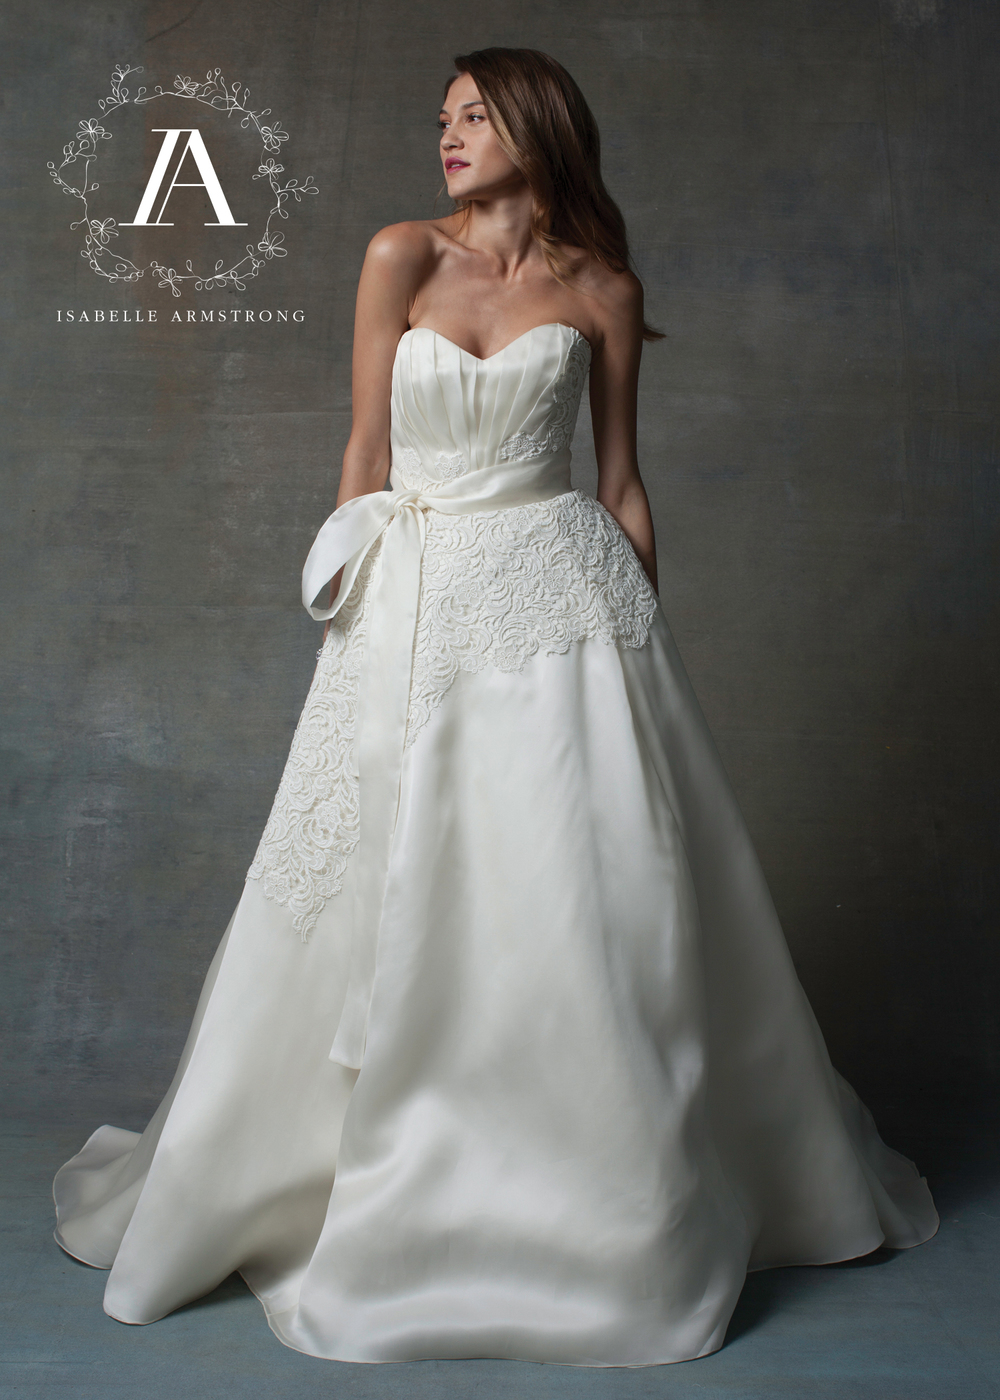 Isabelle Armstrong Bridal Couture Wedding Gown | style Marissa